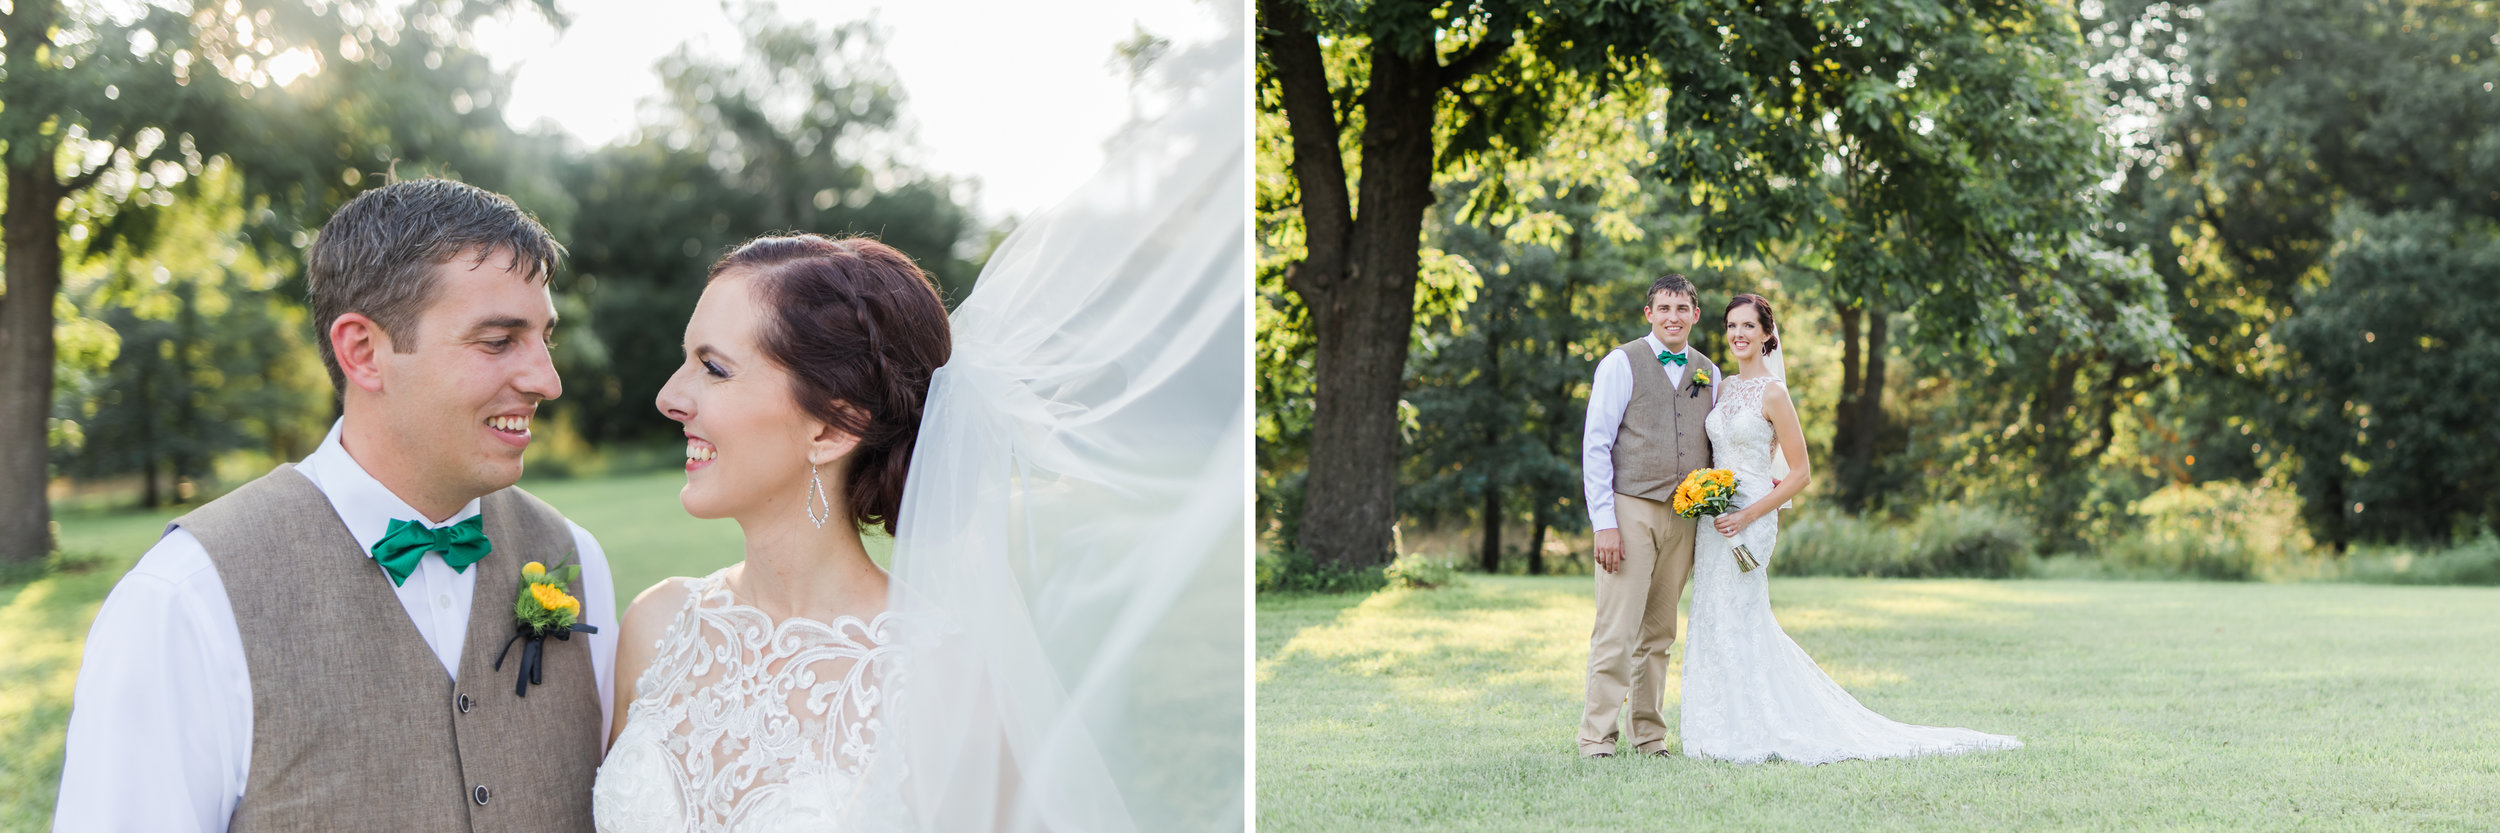 Bentonville Wedding Photographer Holland Barn 14.jpg